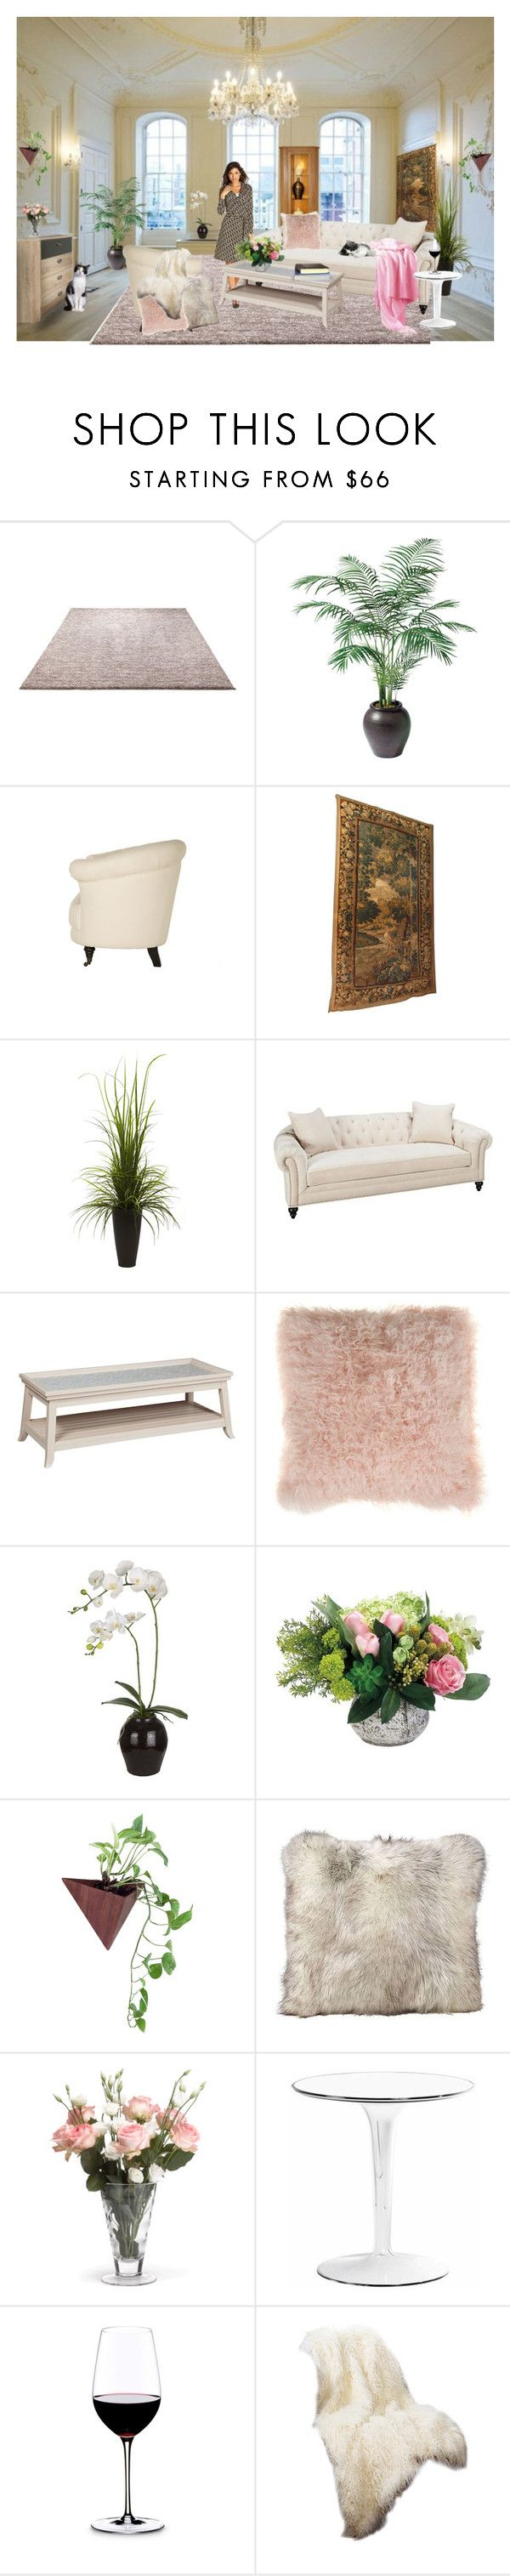 """Home"" by marianne-spiessens on Polyvore featuring interior, interiors, interior design, home, home decor, interior decorating, ESPRIT, Ethan Allen, Jayson Home and Nearly Natural"